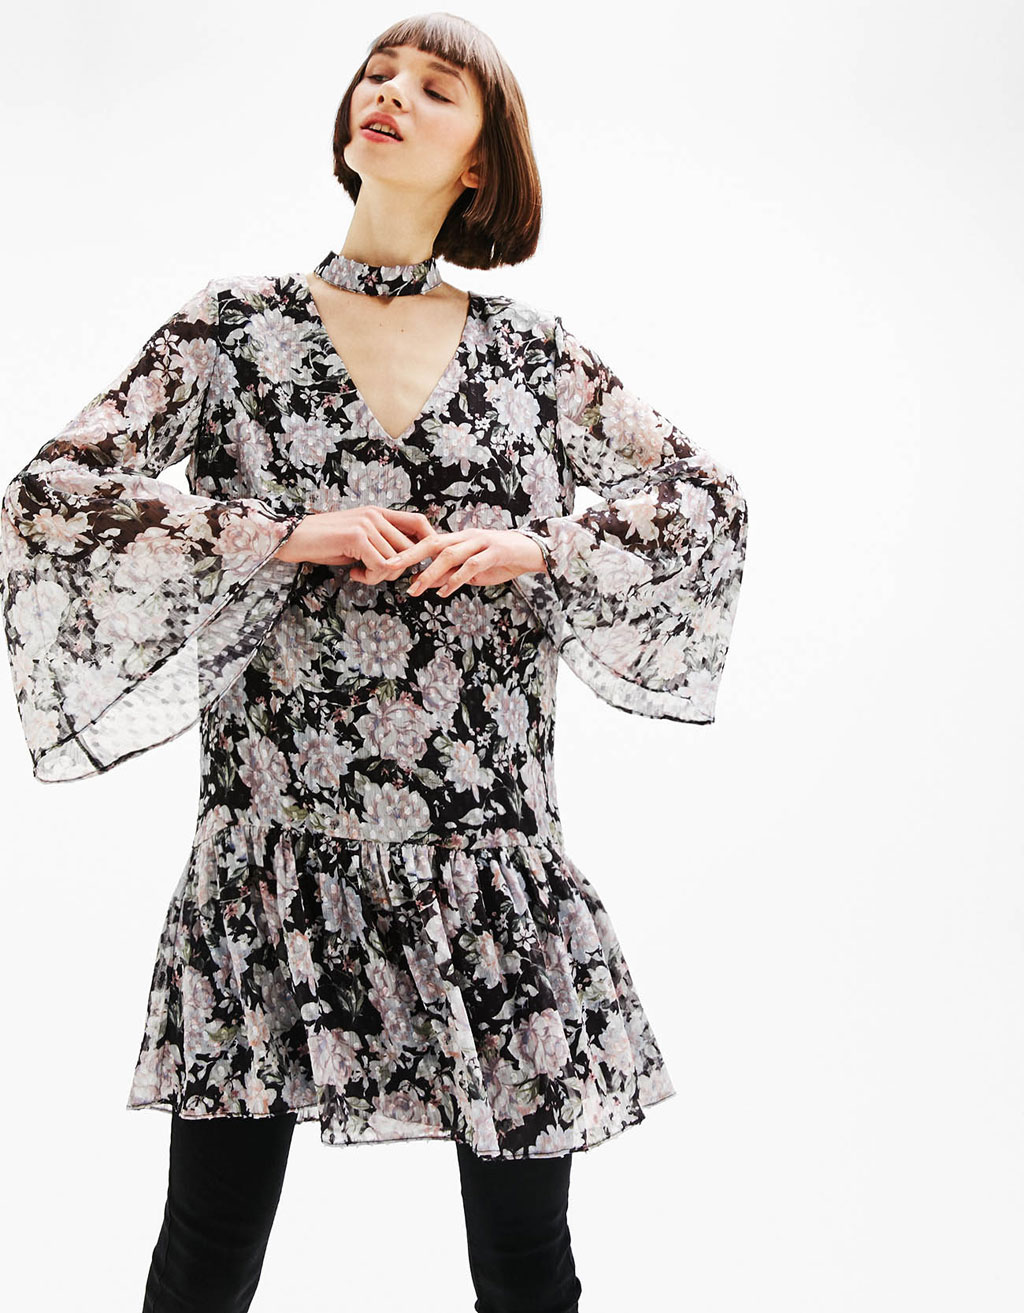 Floral print dress with flared sleeves.